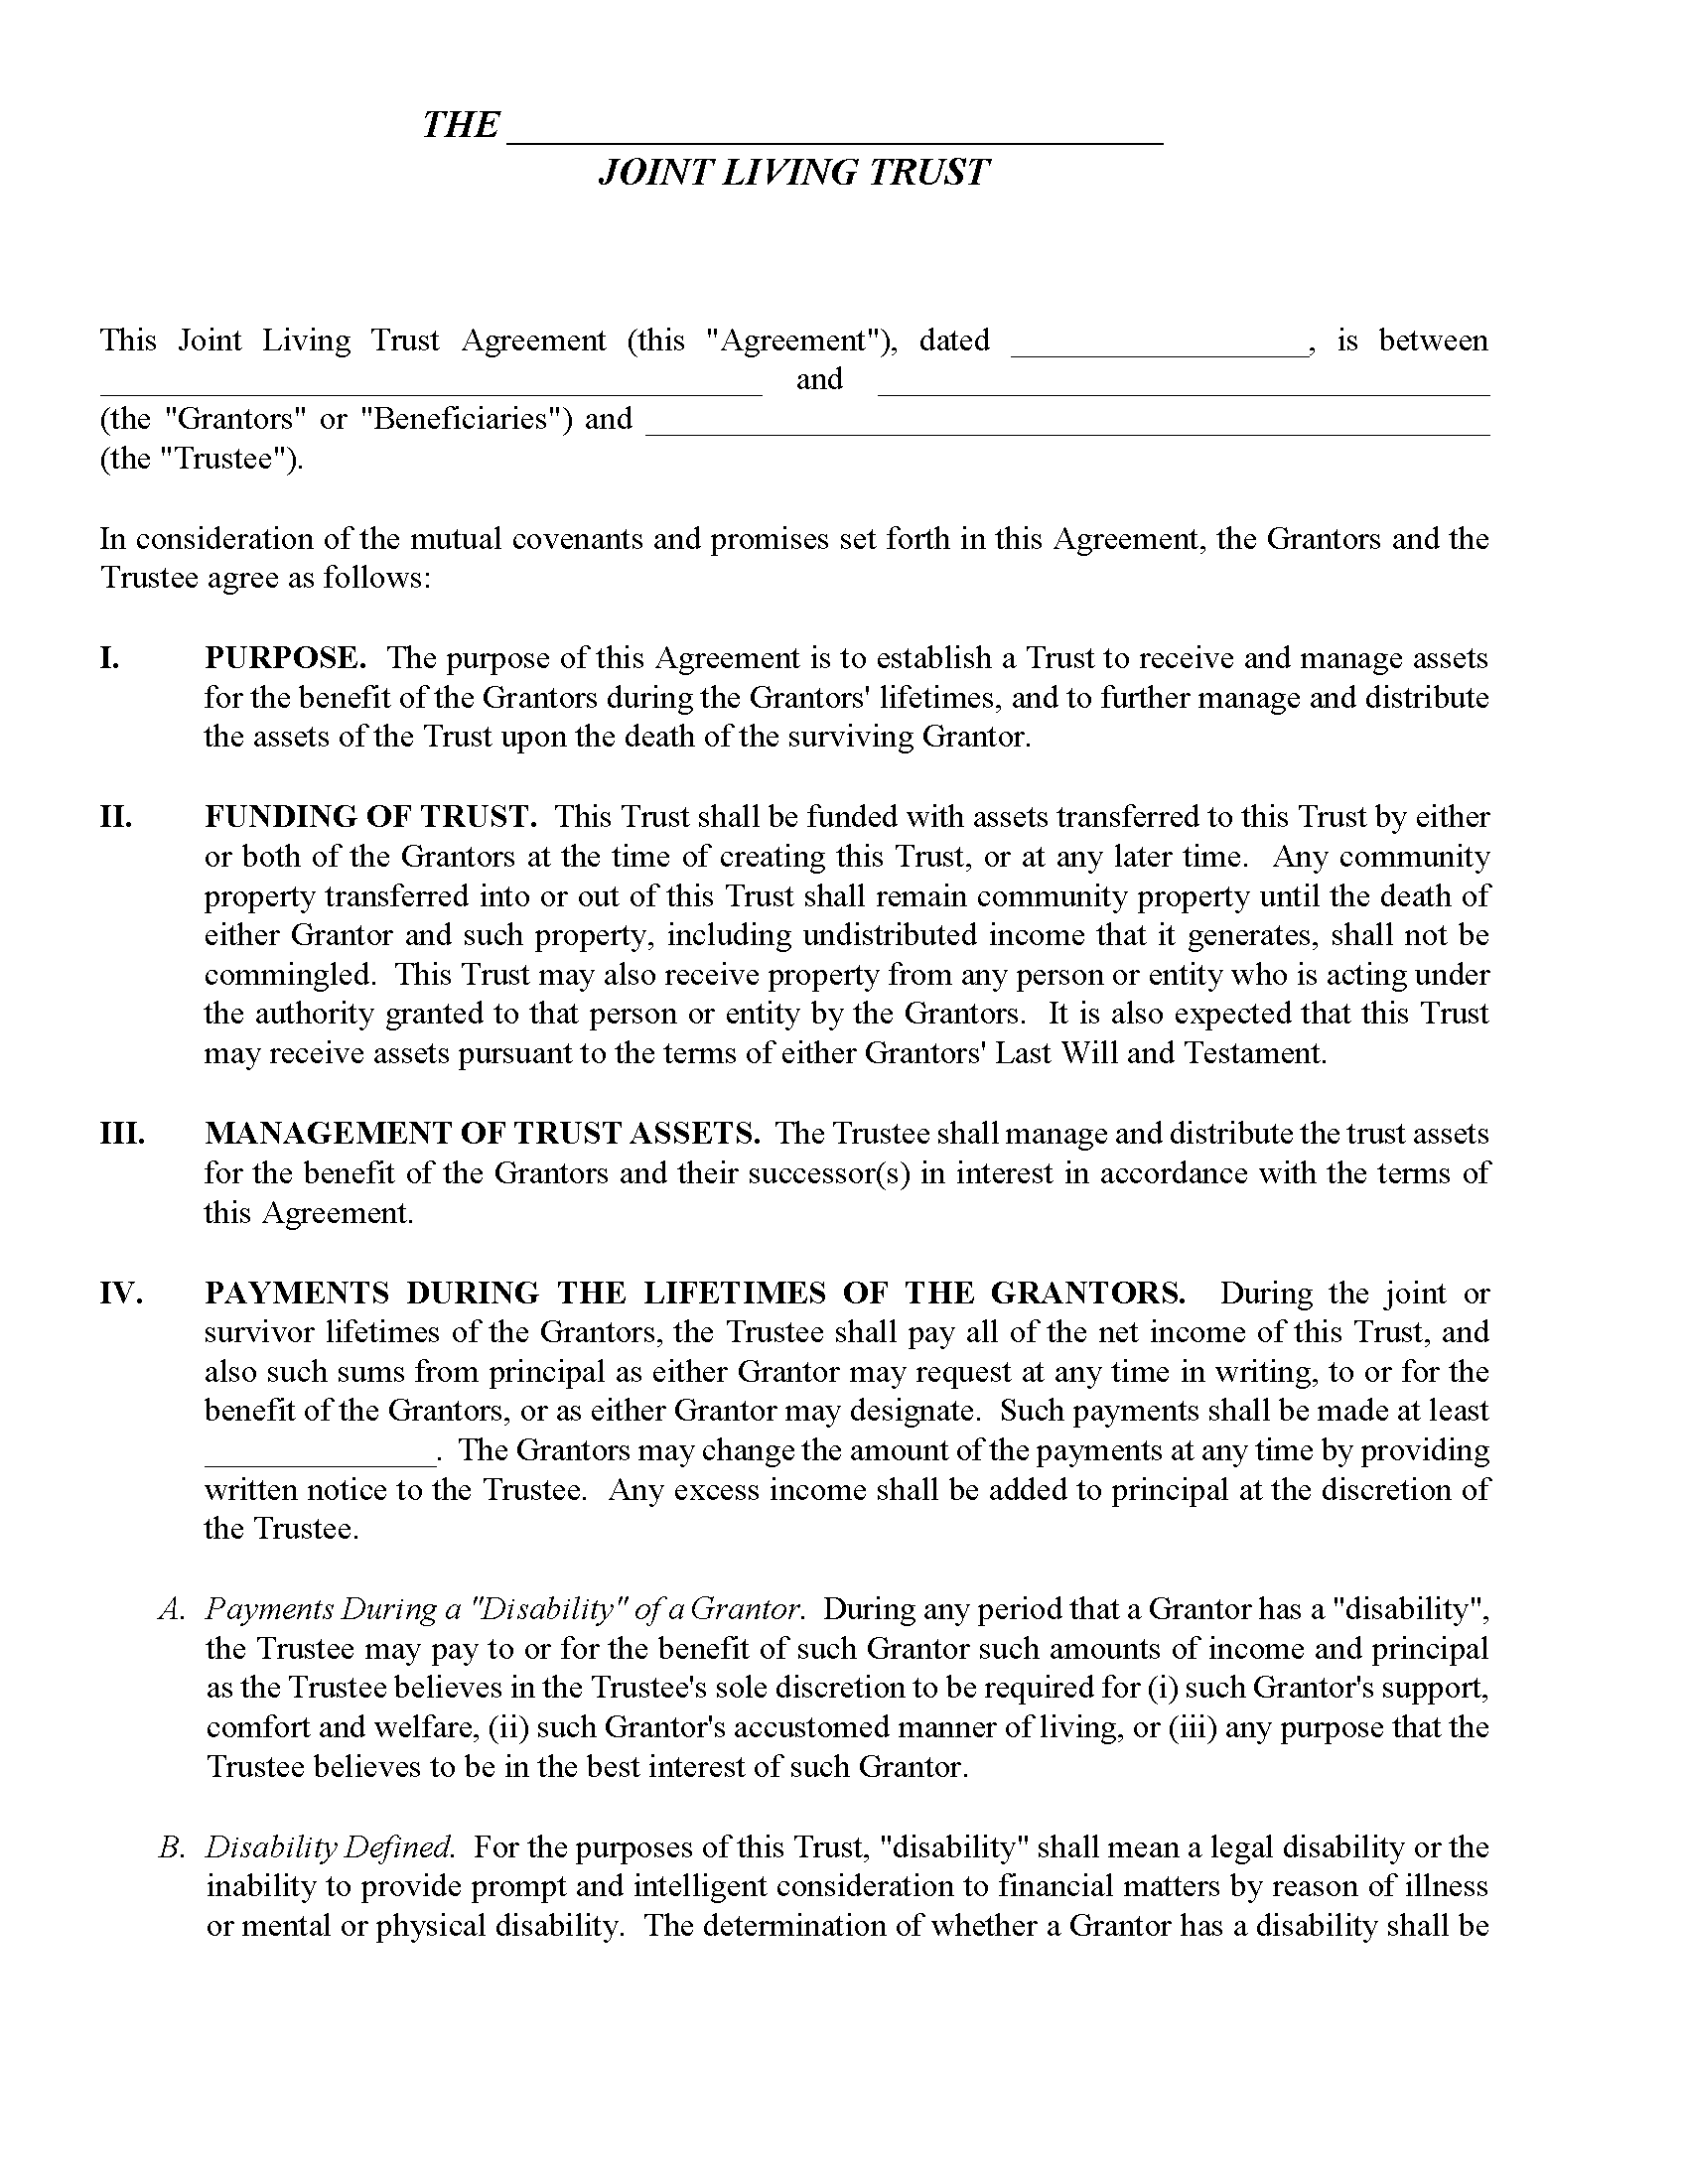 New Jersey Joint Living Trust Form